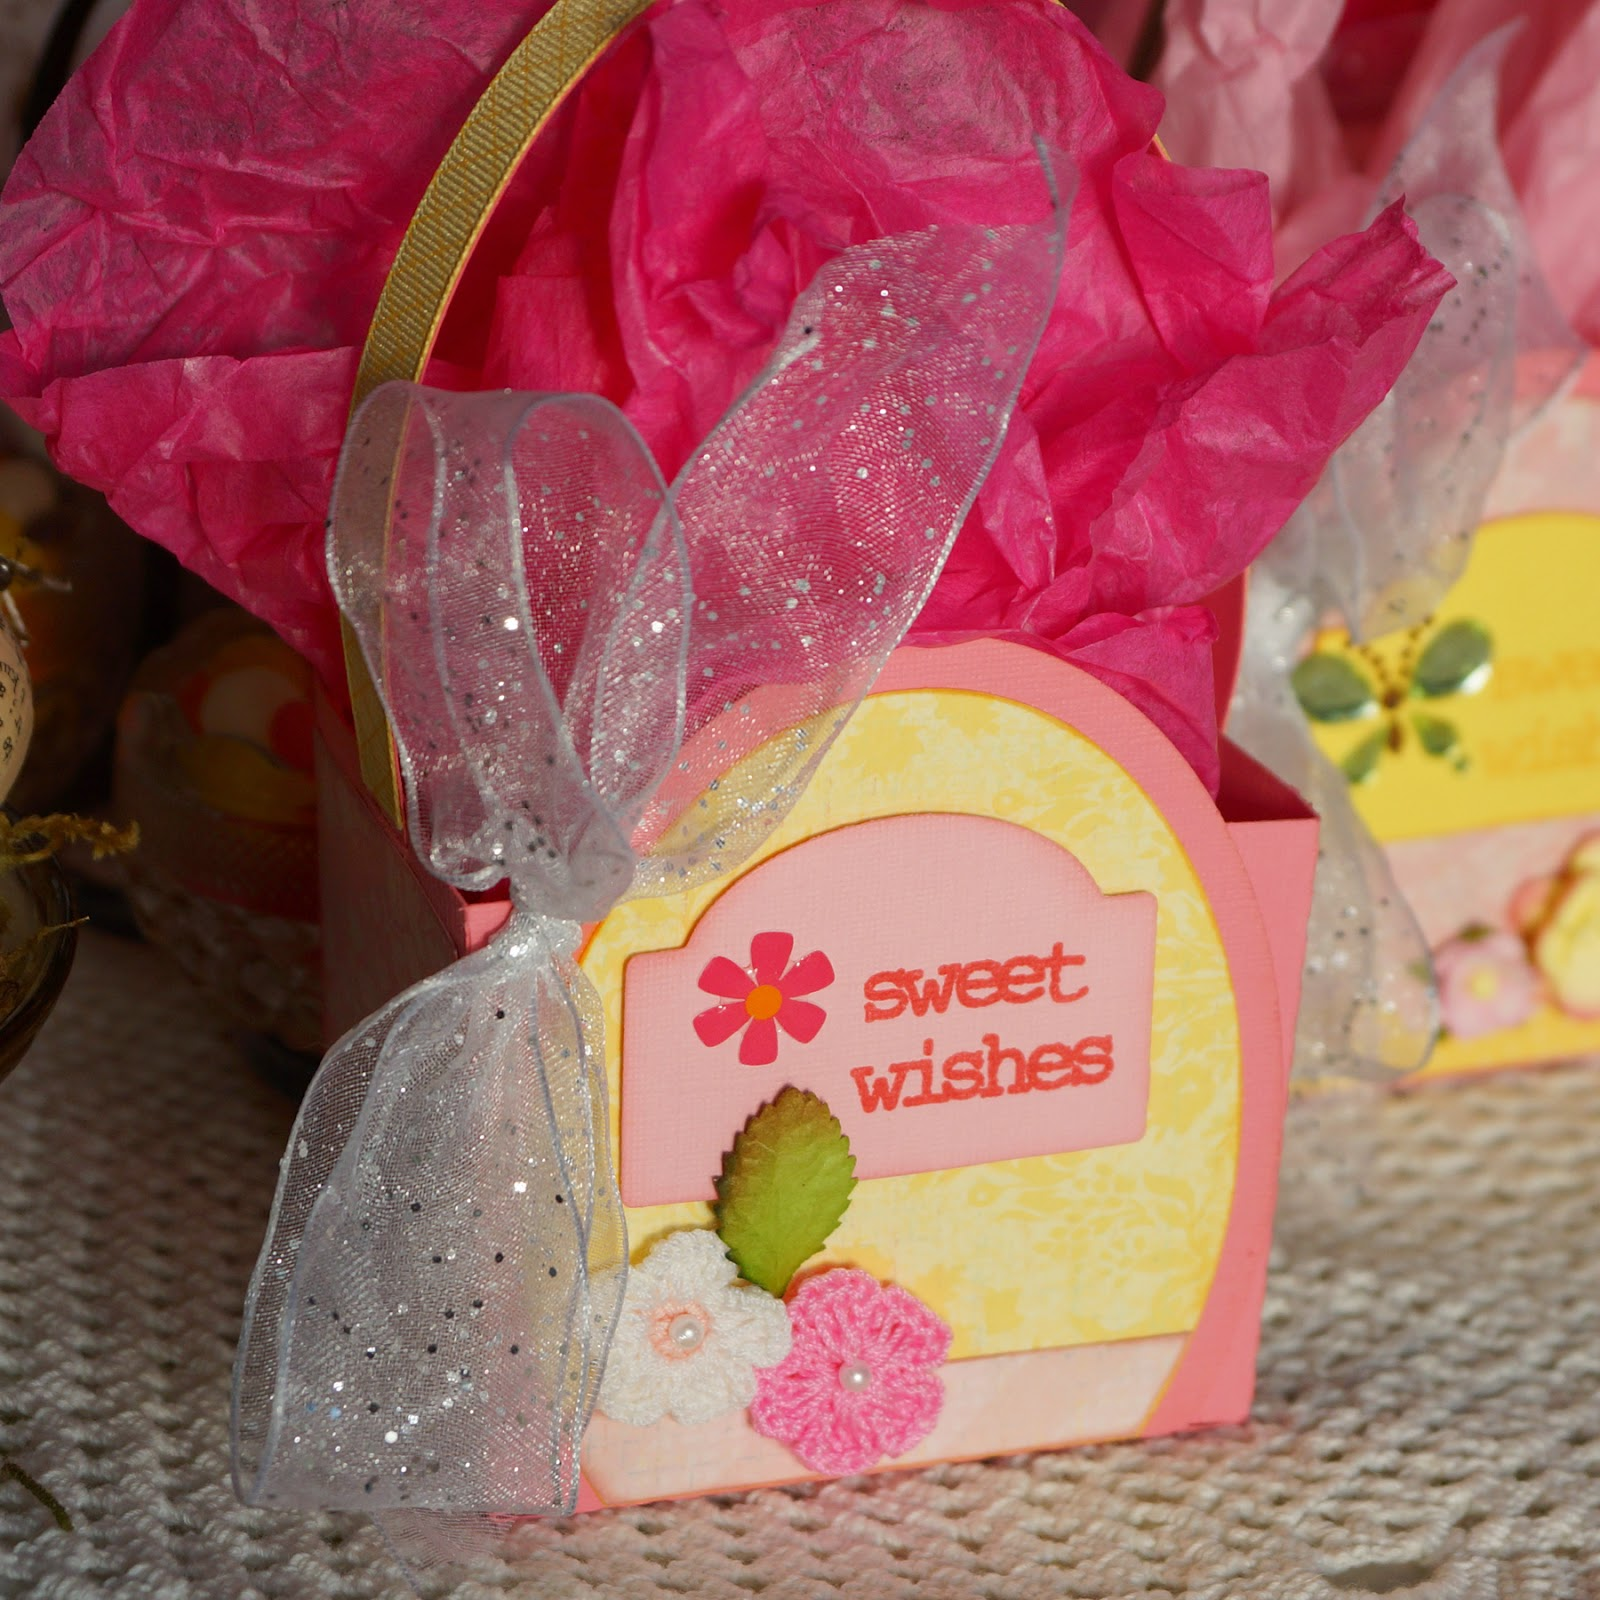 How To Make a Spring Party Goodie Bag - Craft Paper Scissors